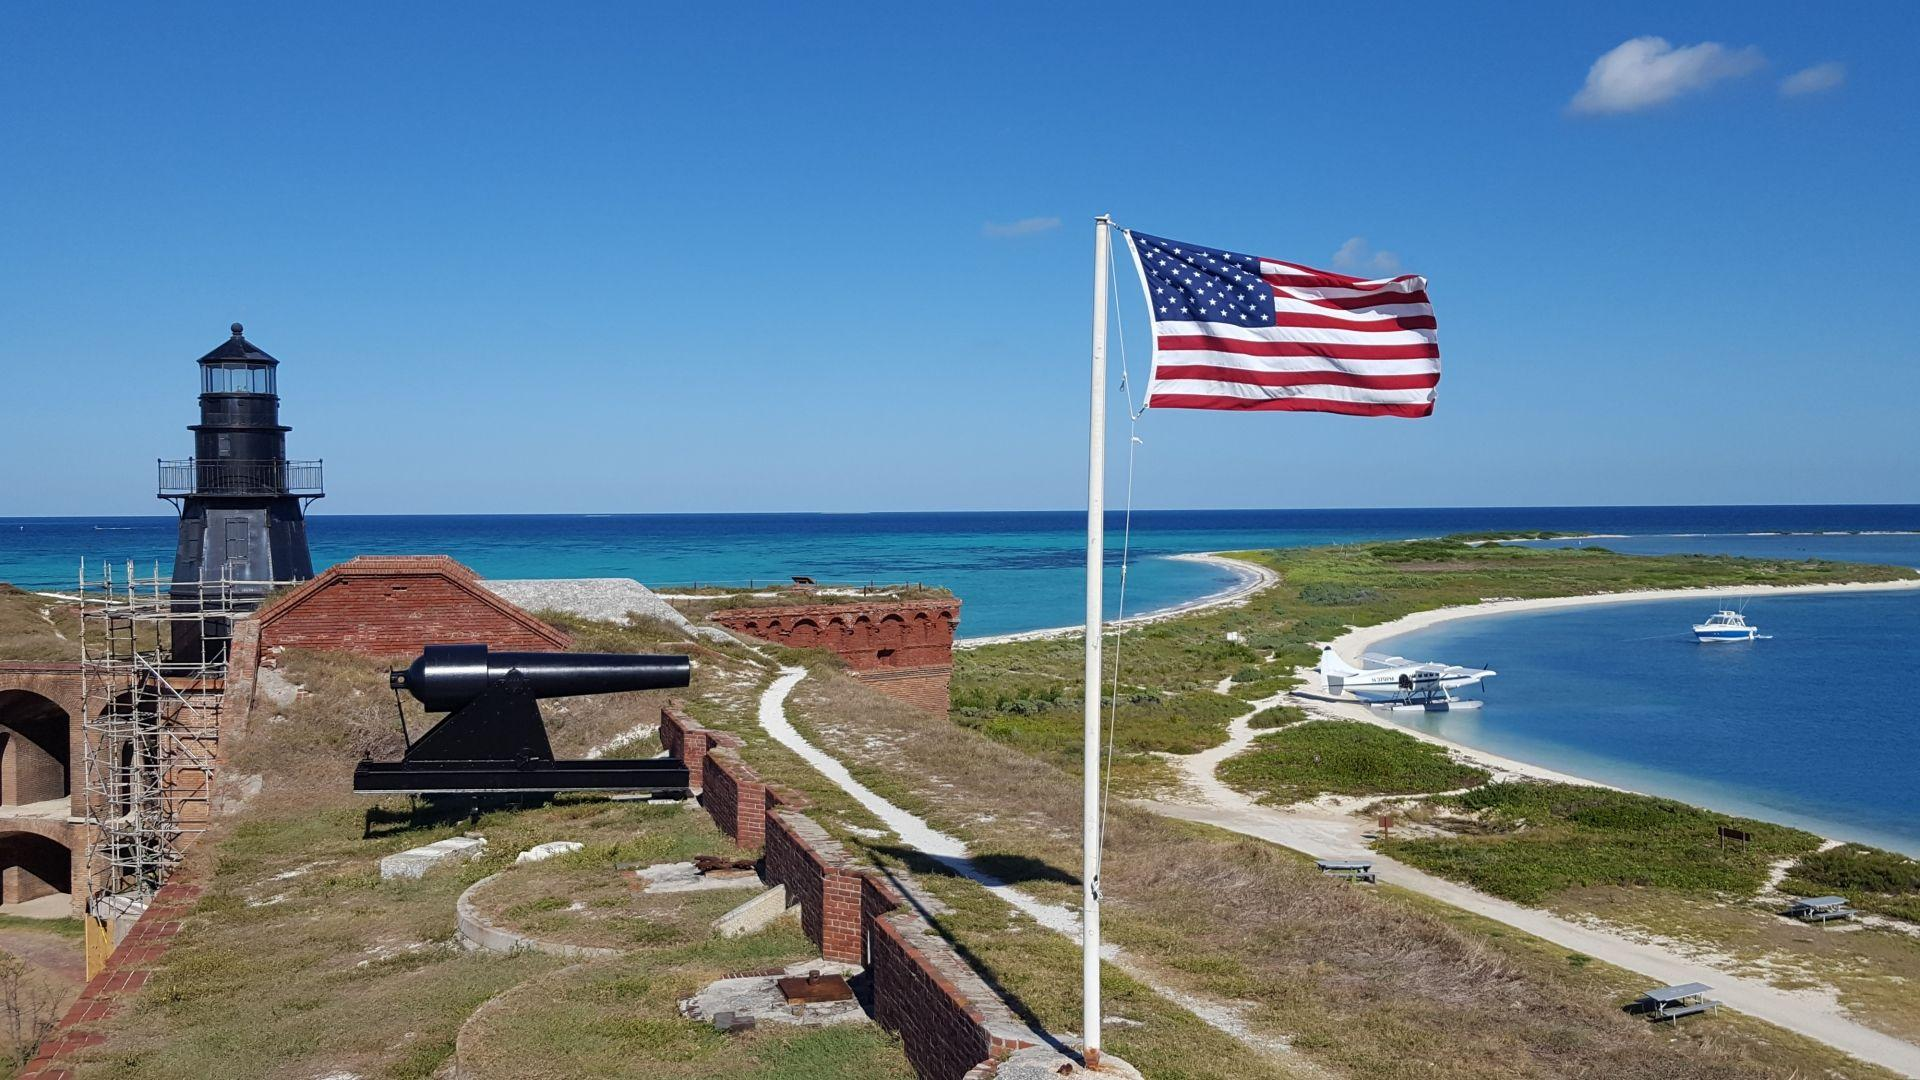 Remote Camping at Dry Tortugas National Park